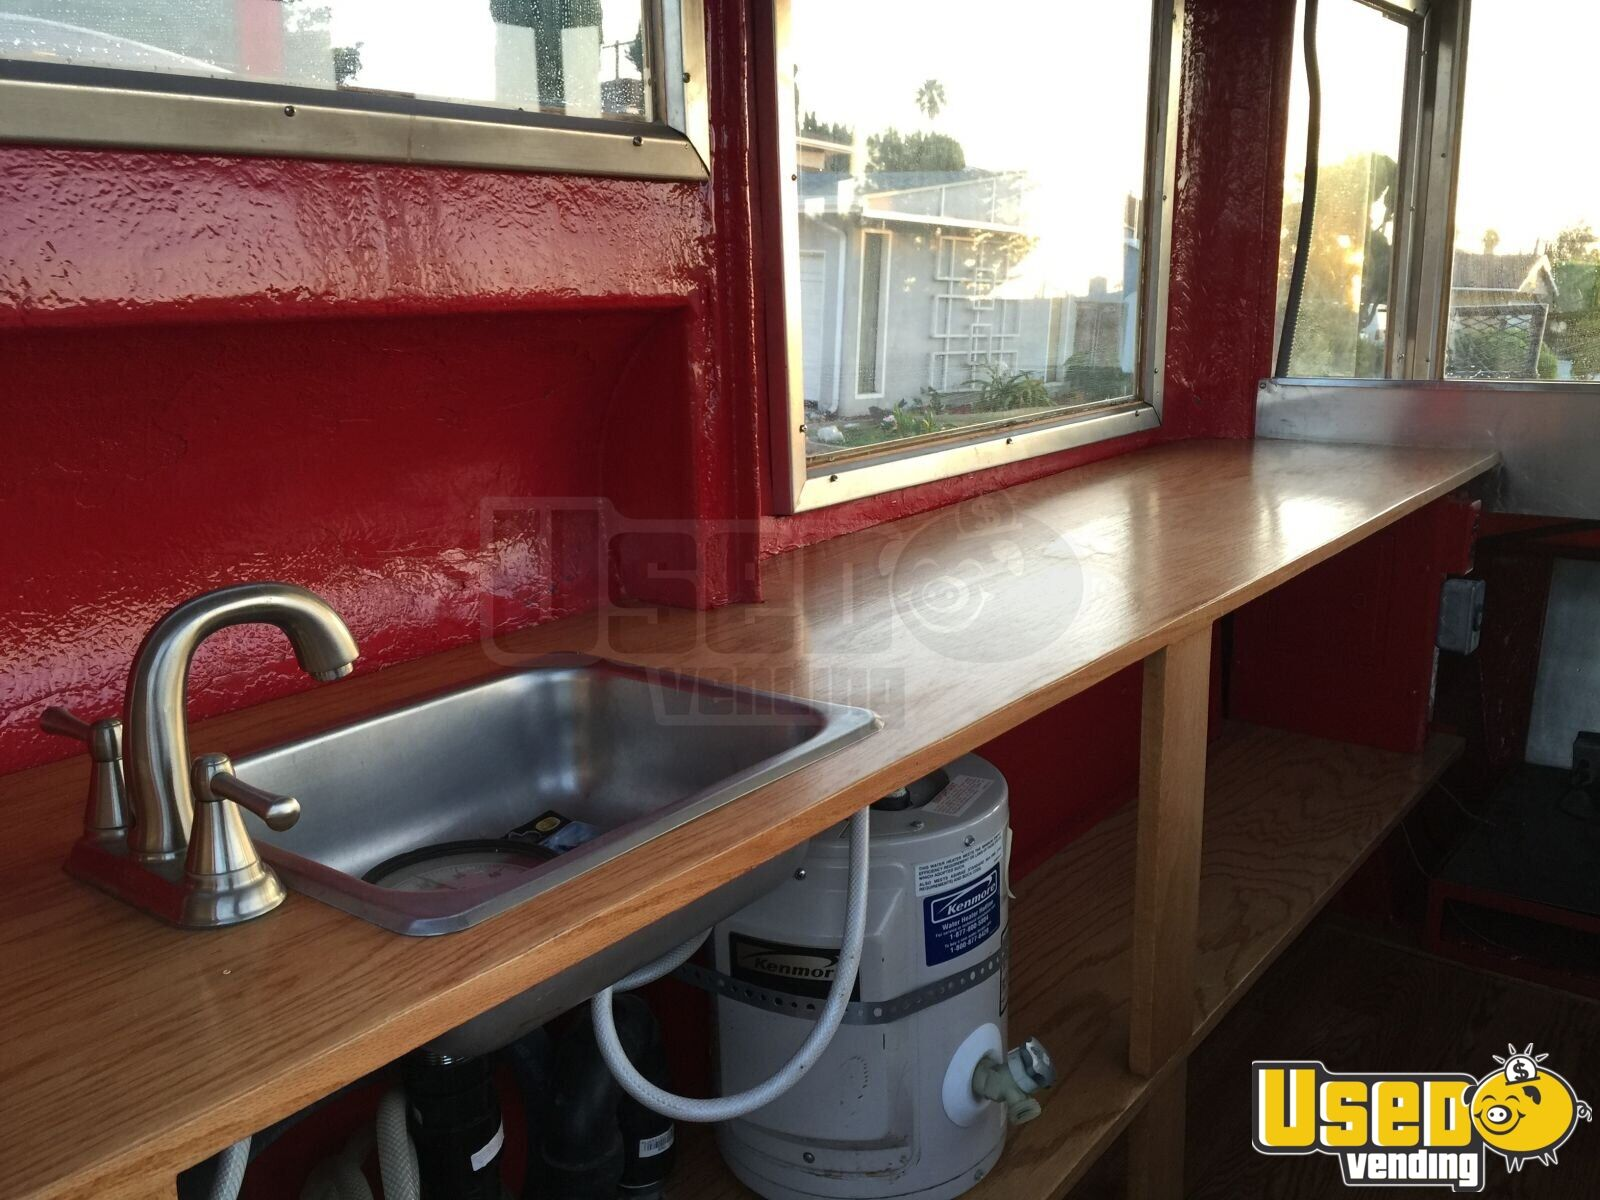 Limos For Sale >> Antique Style Popcorn Wagon |Cretors Style Wagon for Sale in California